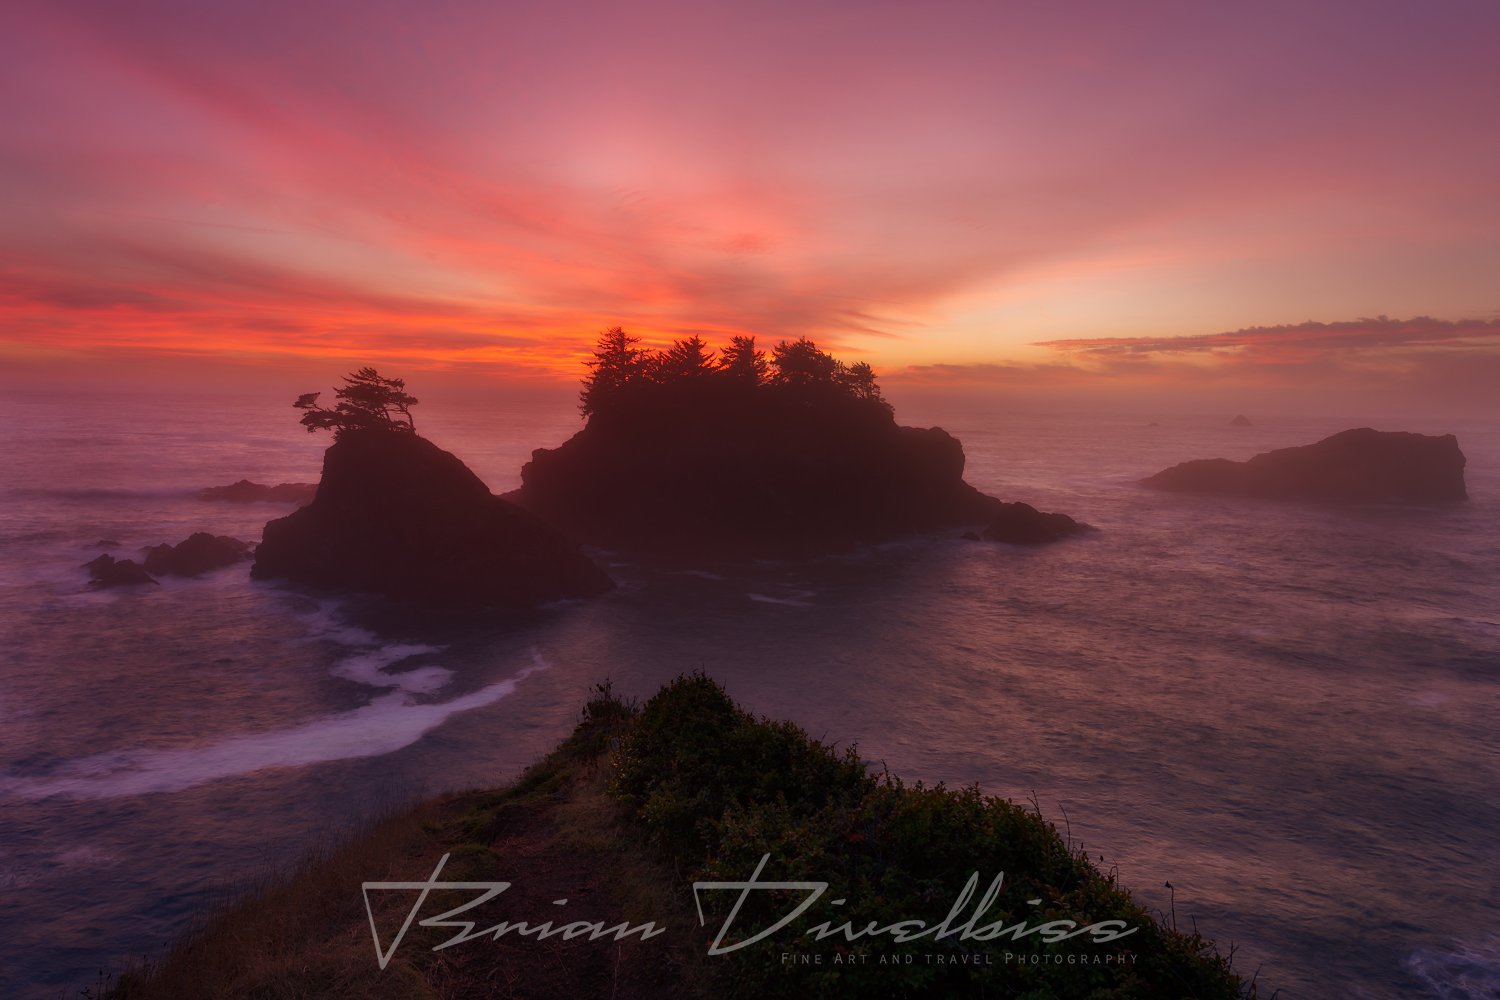 A stunning sunset with hues of purple and red arises from behind a series of seastacks off the rugged coast of Southern Oregon.